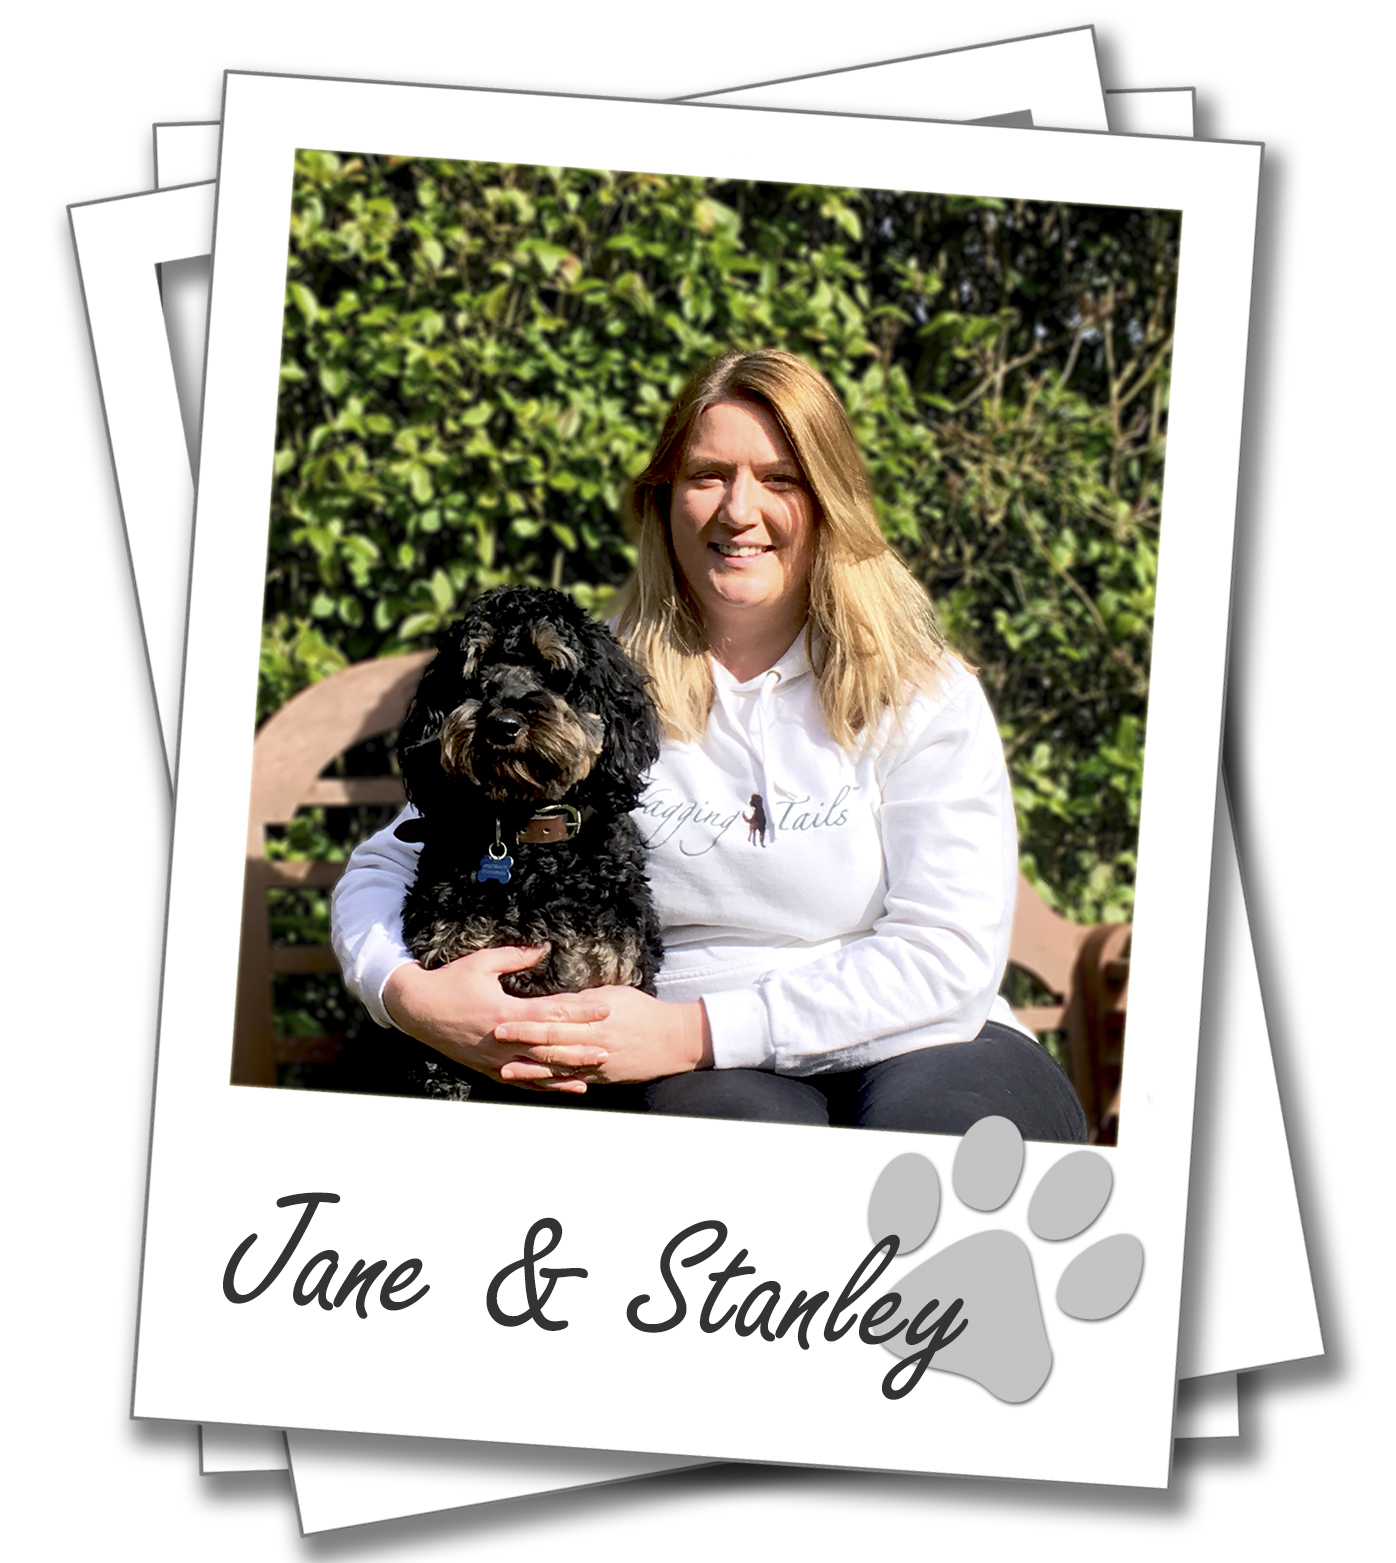 Wagging Tails York Dog Boarding, Jane Bamford with her dog Stanley